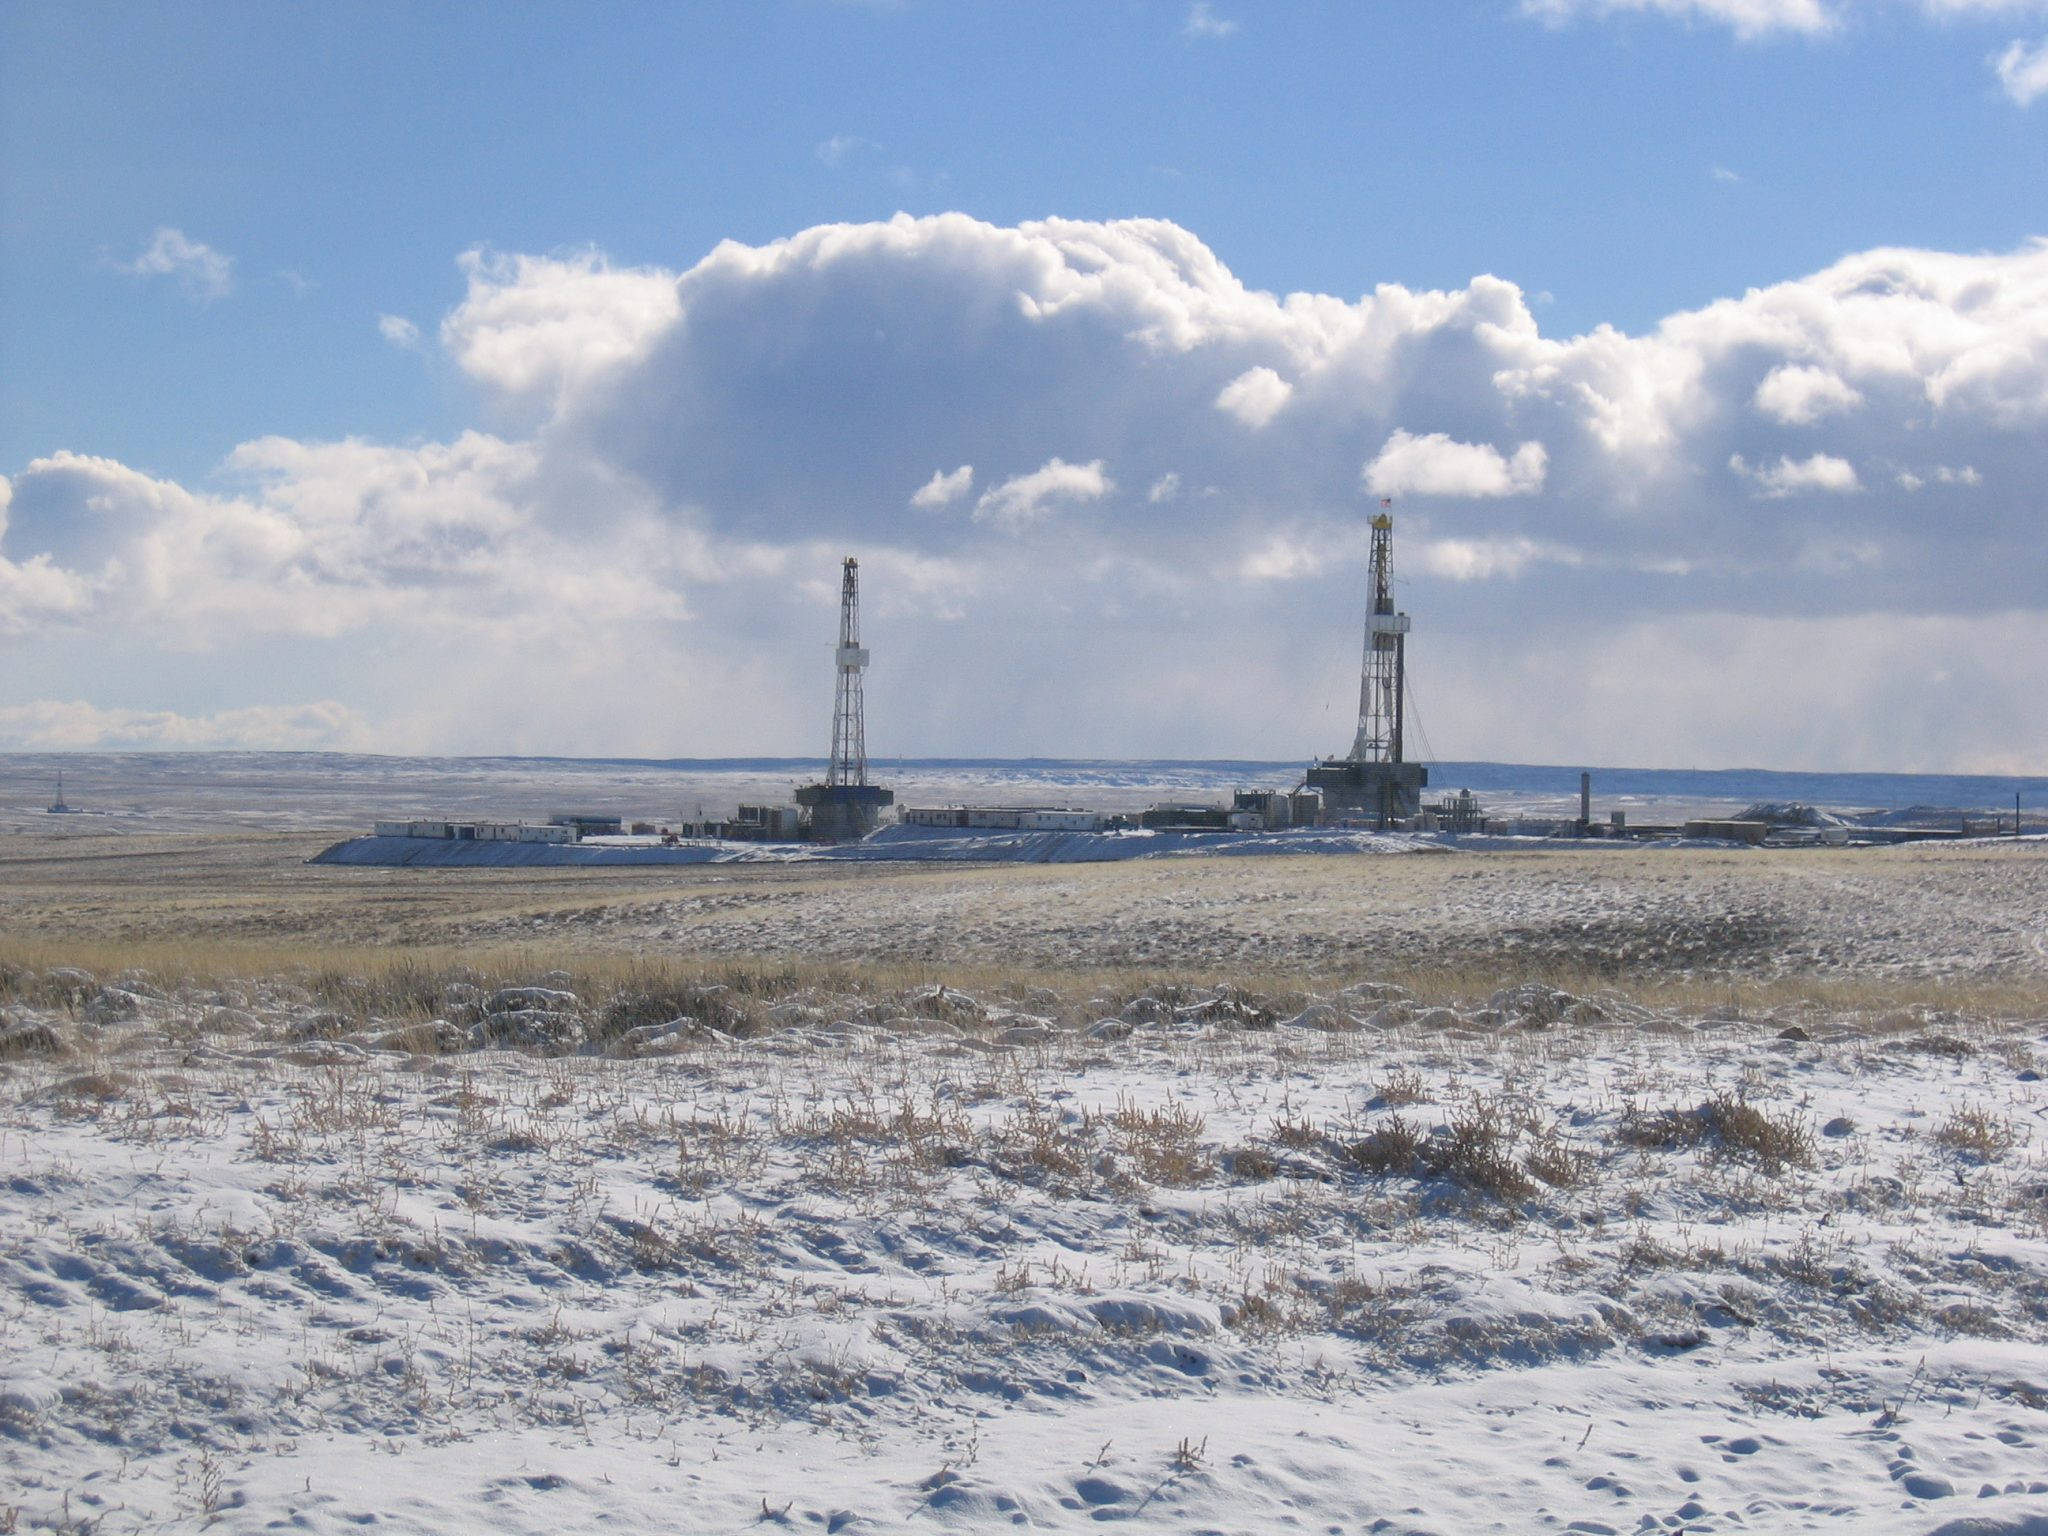 Natural resource extraction reduces and fragments habitat across the West.